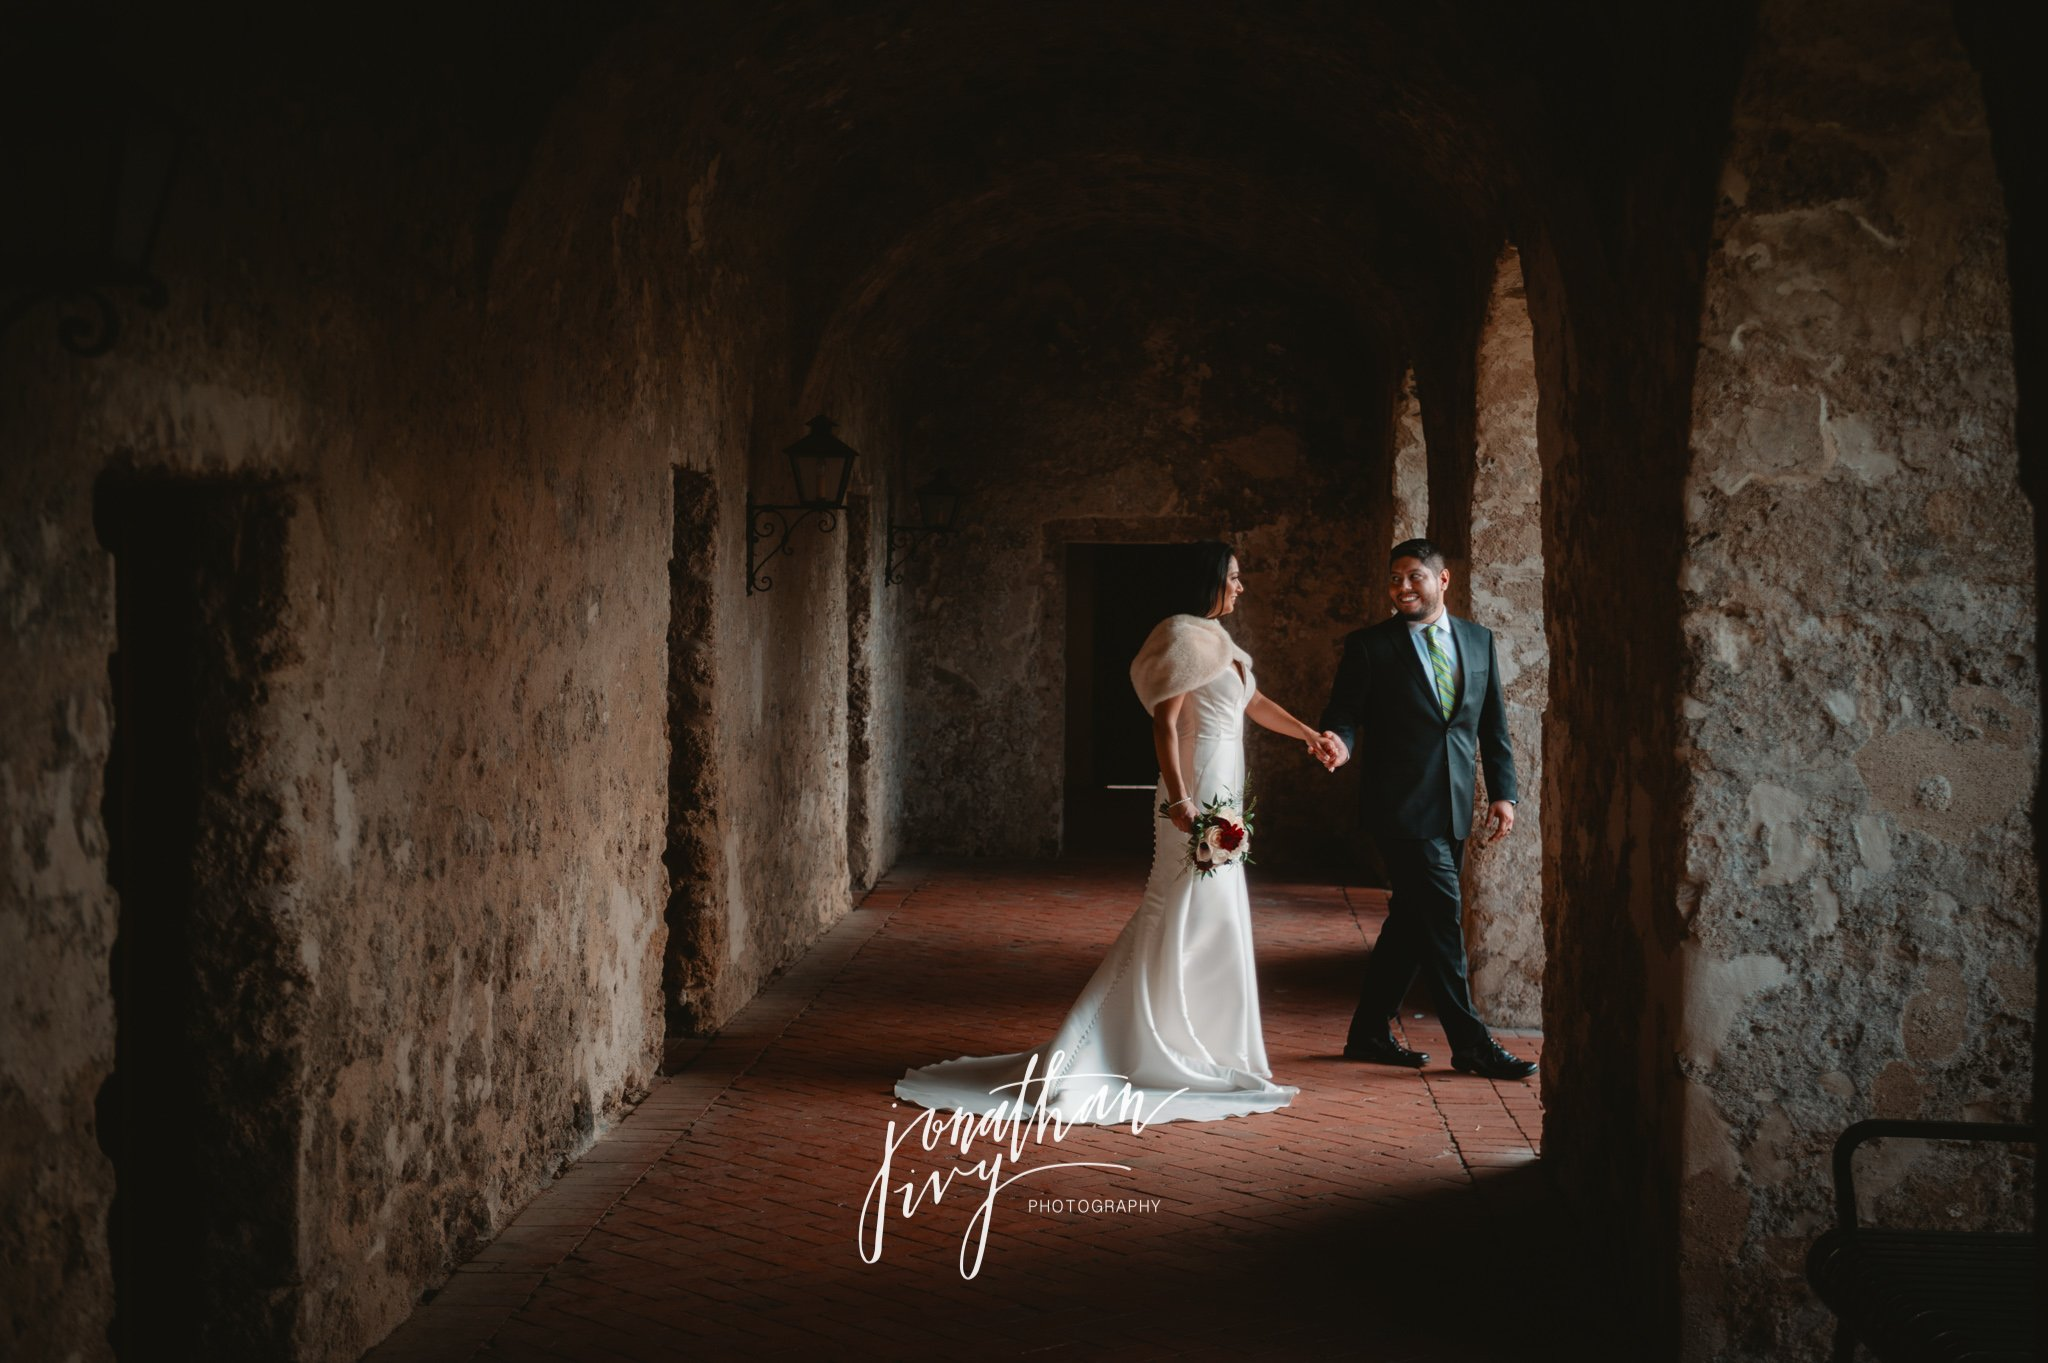 Mission Concepción Wedding in San Antonio